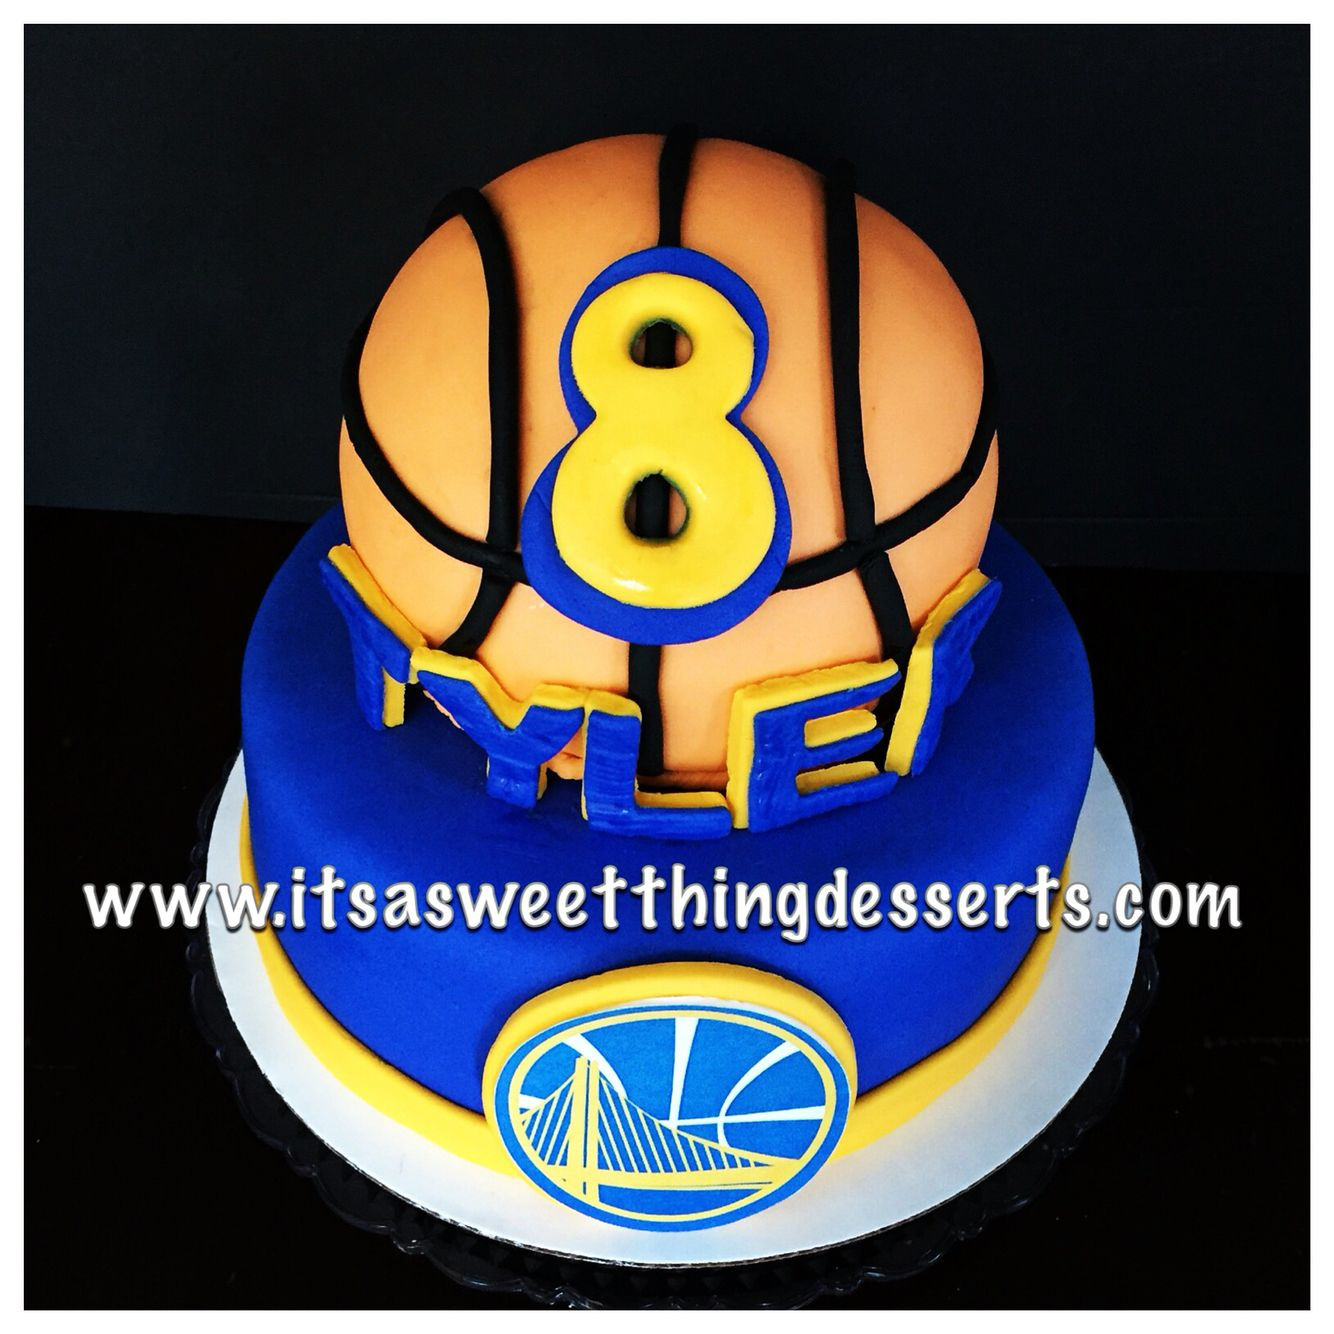 Golden State Warriors Birthday Cake  Golden State Warriors themed Cake cake design